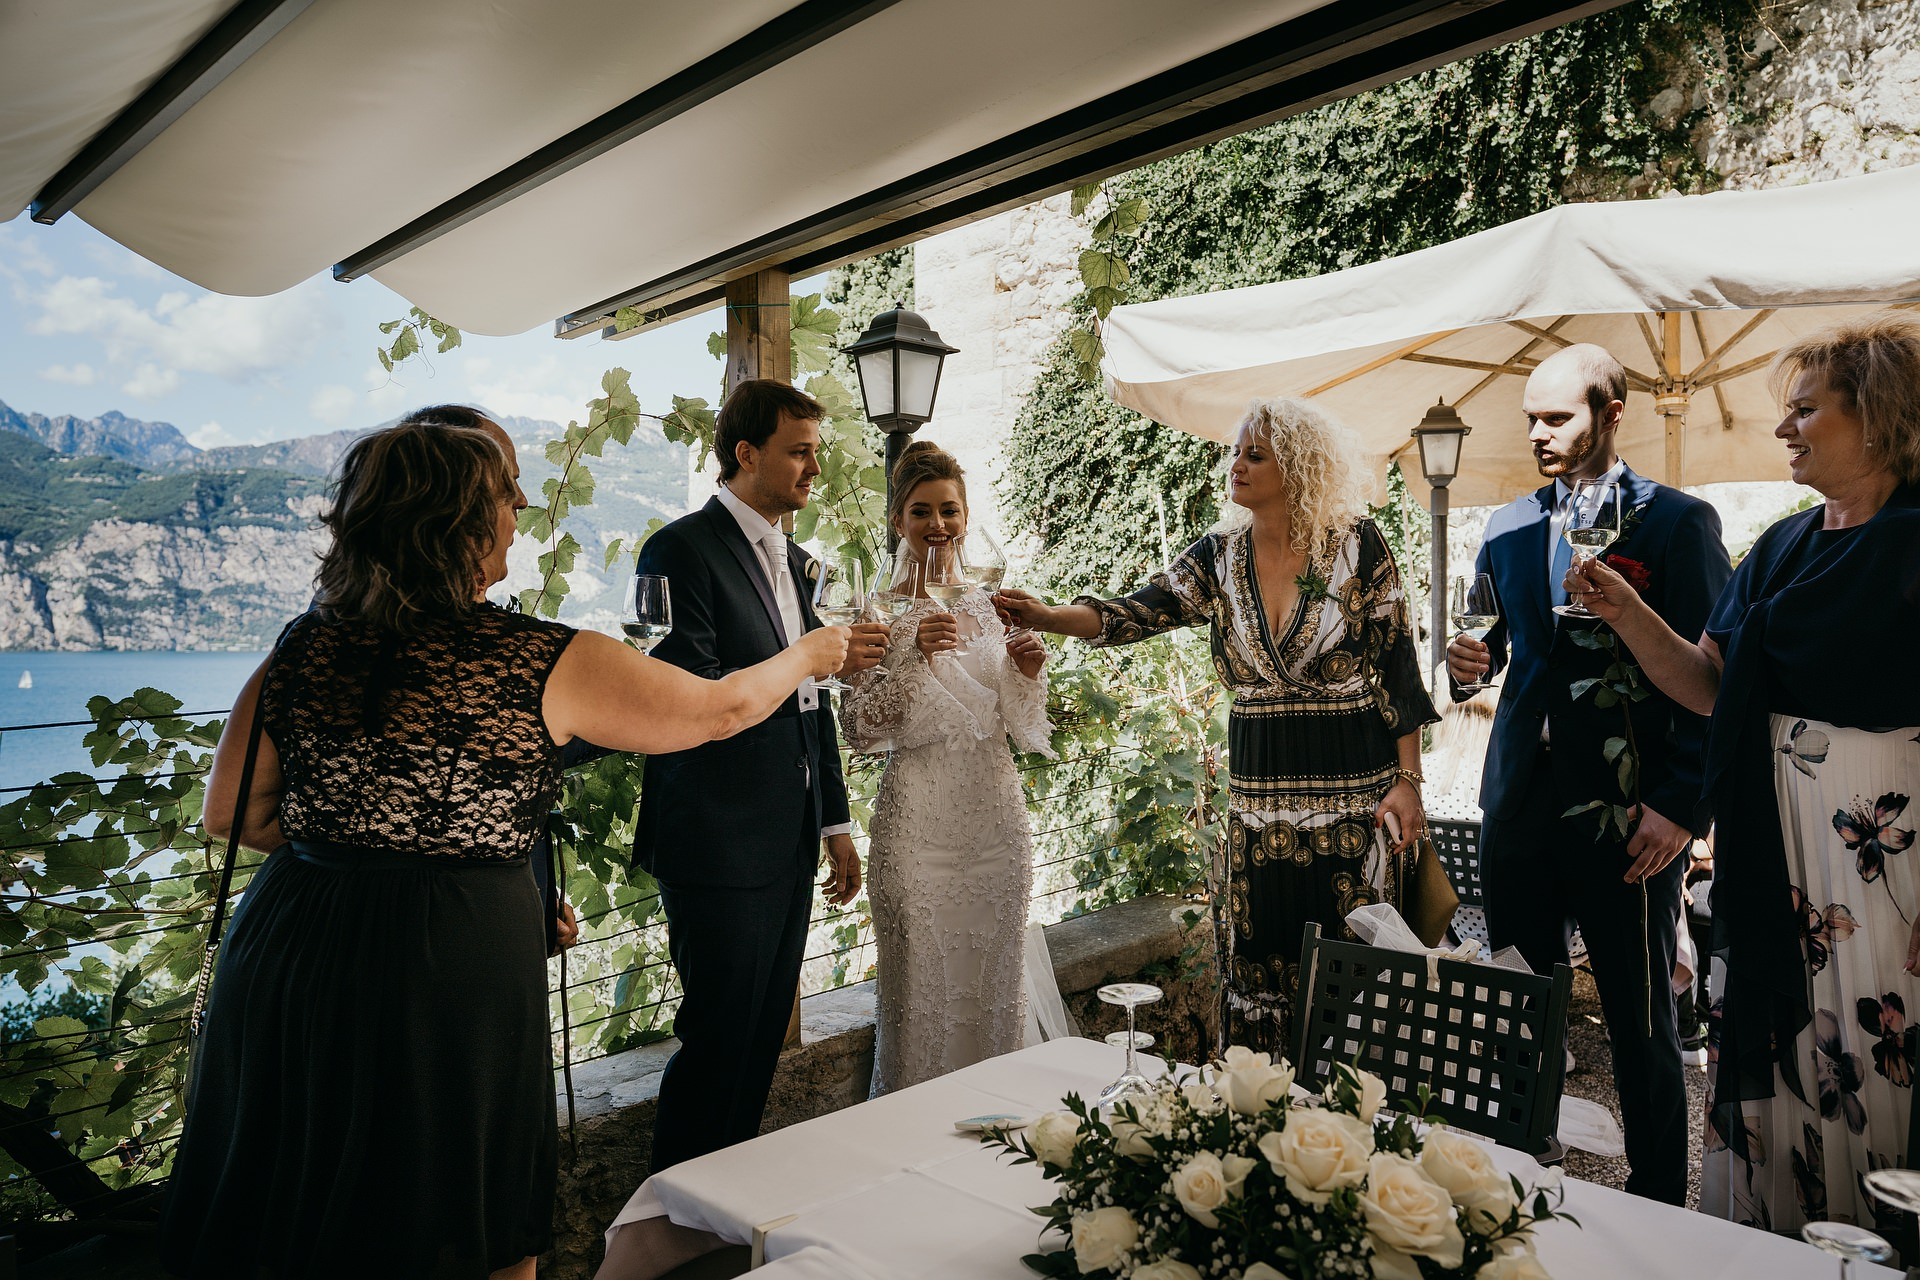 Paradiso Perduto Restaurant Event Venue Photos | A toast is made for the couple